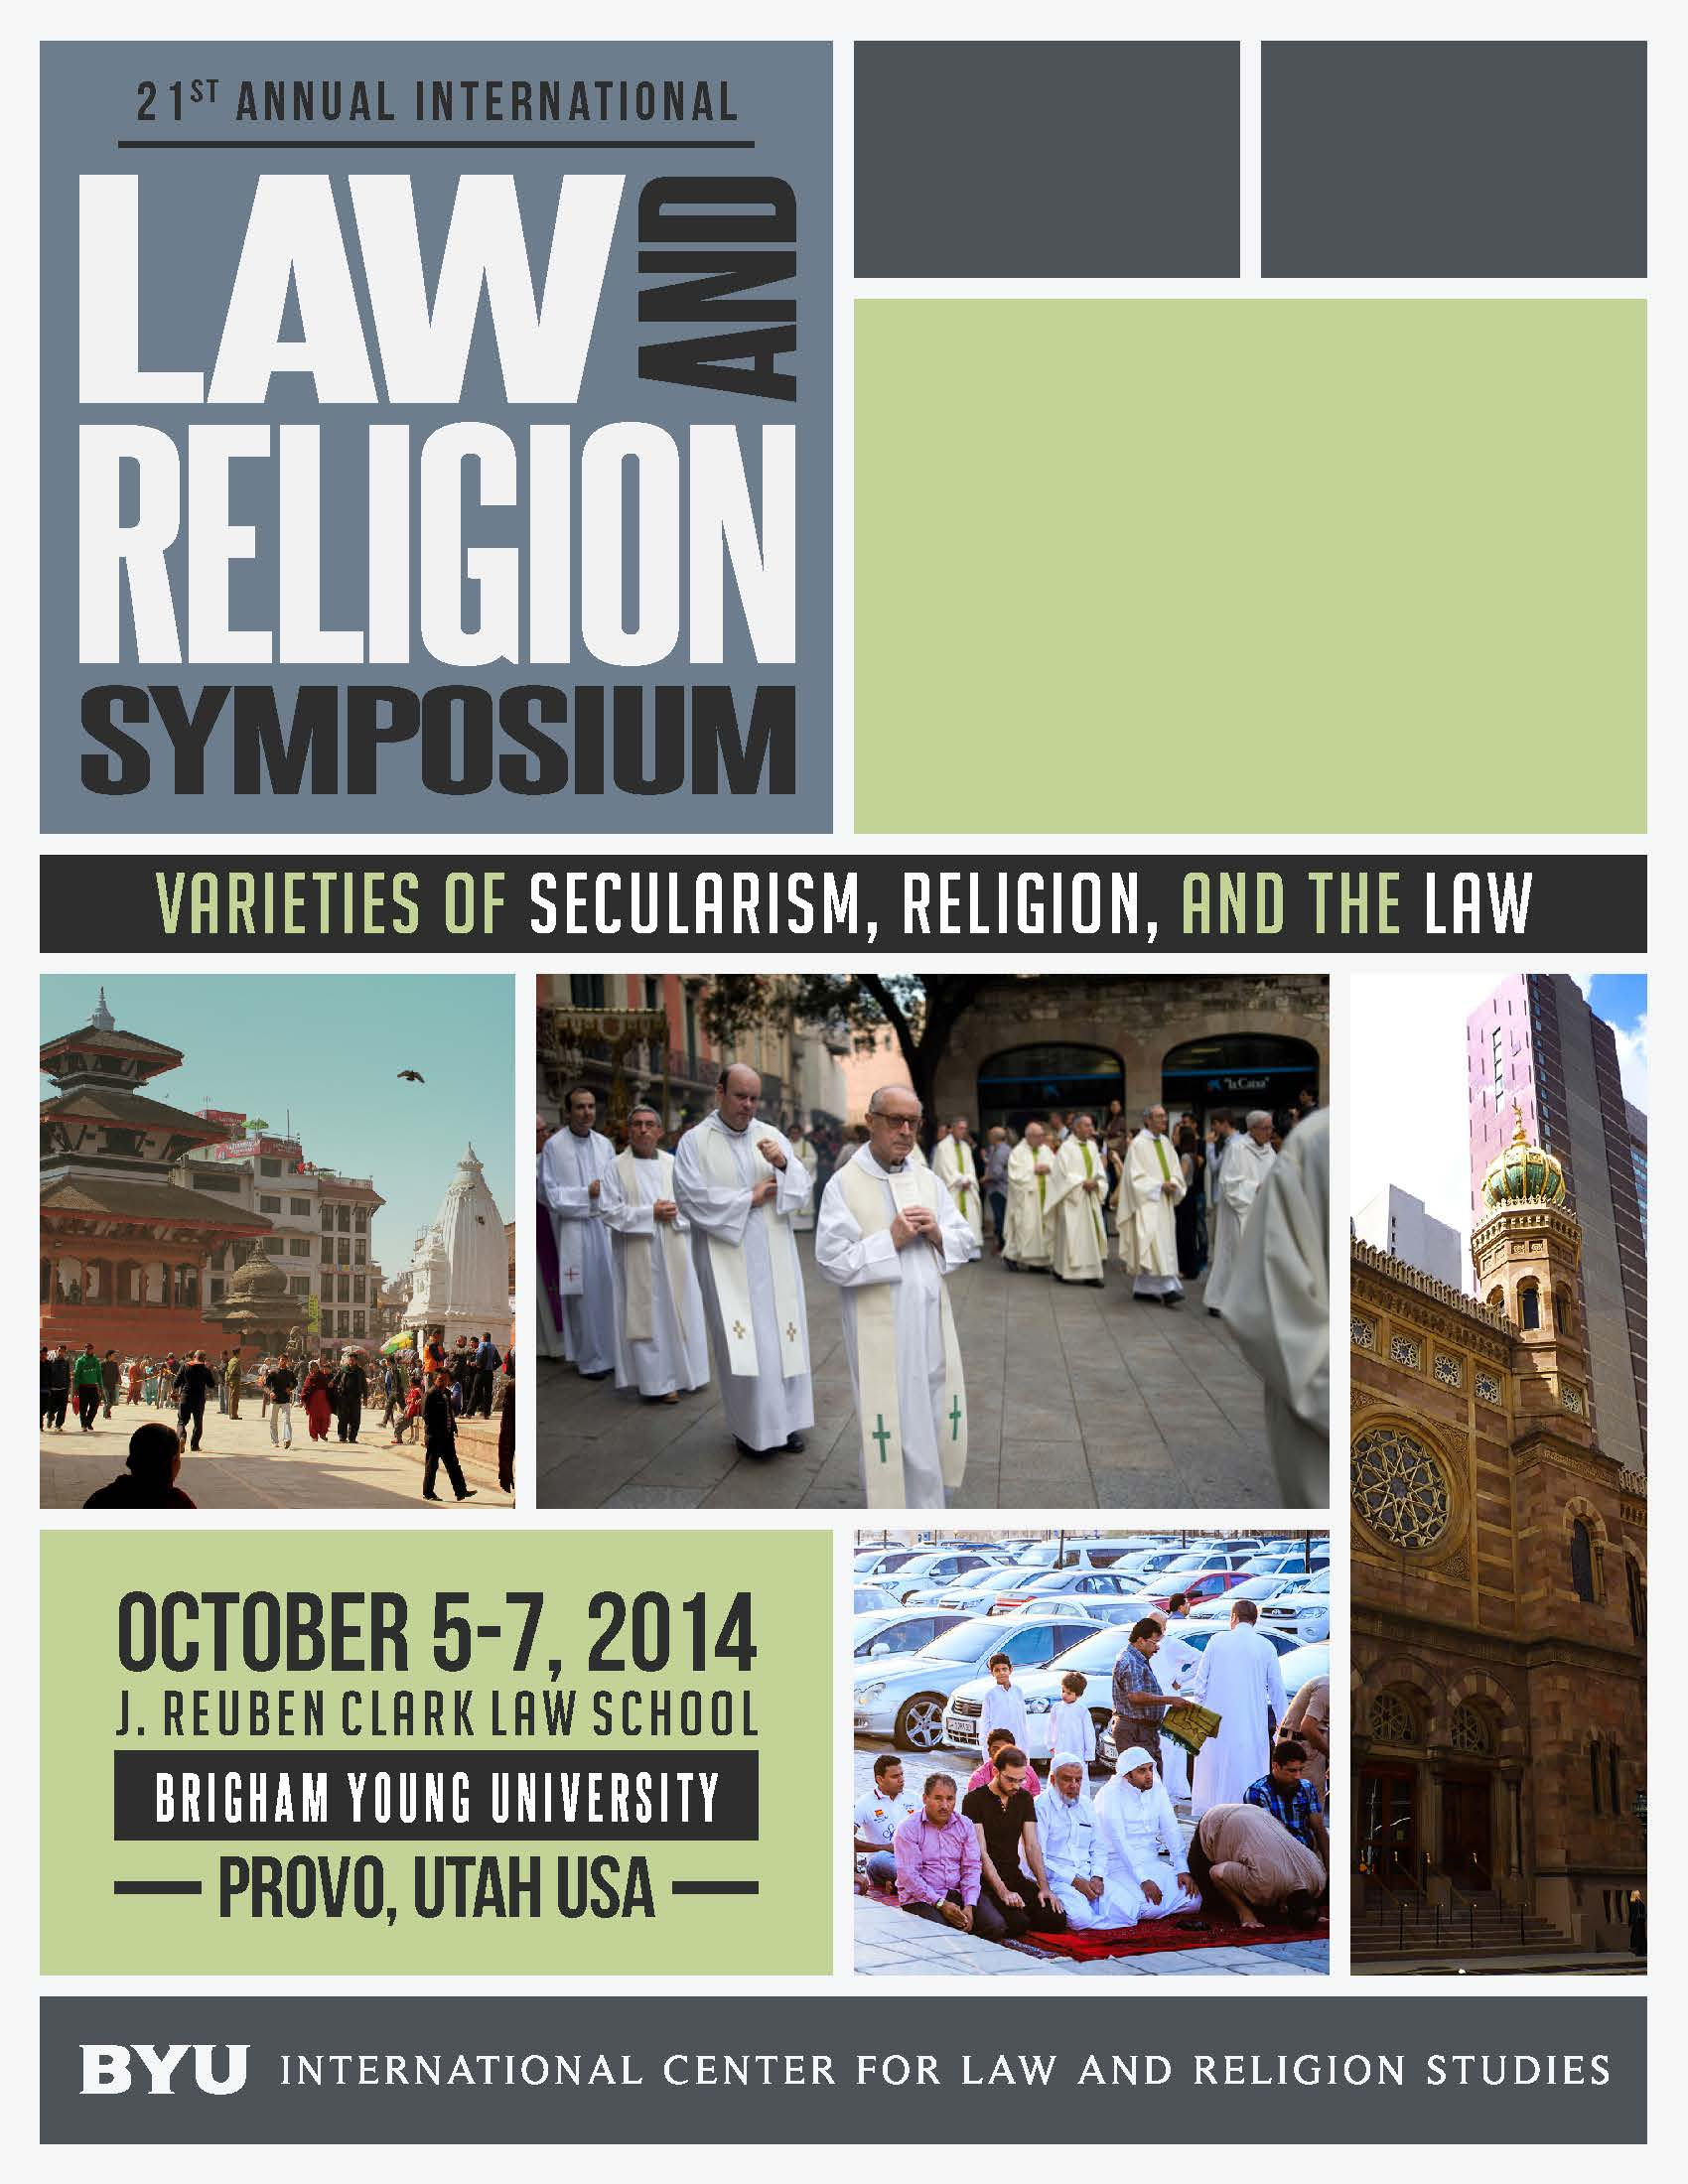 Image for Symposium 2014: 'Varieties of Secularism, Religion, and the Law'